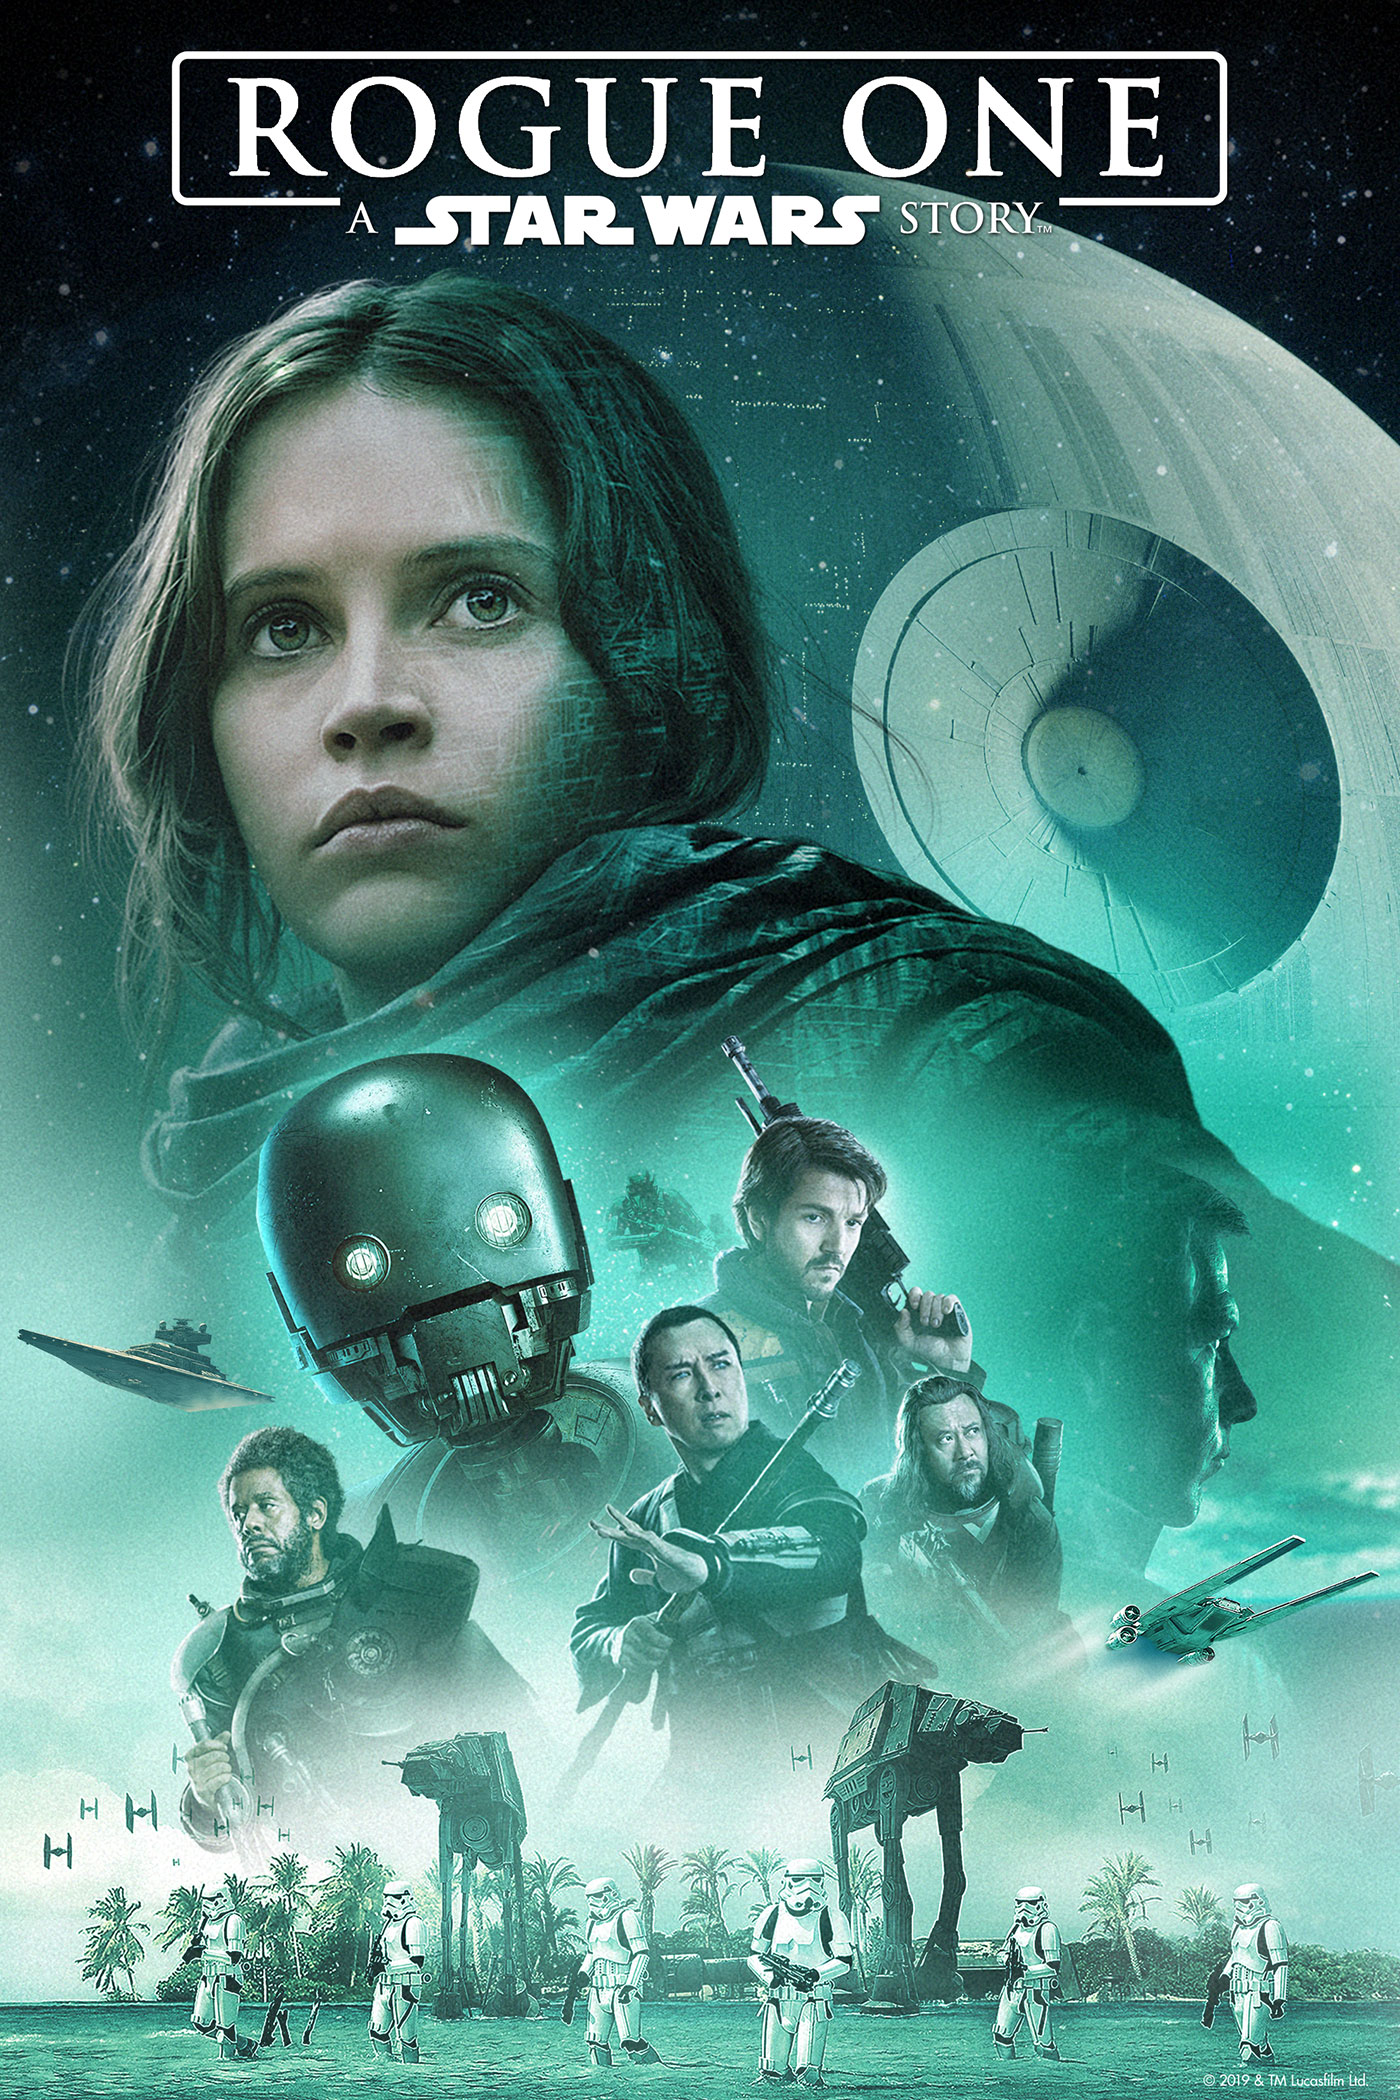 Rogue One: A Star Wars Story | Buy, Rent or Watch on FandangoNOW